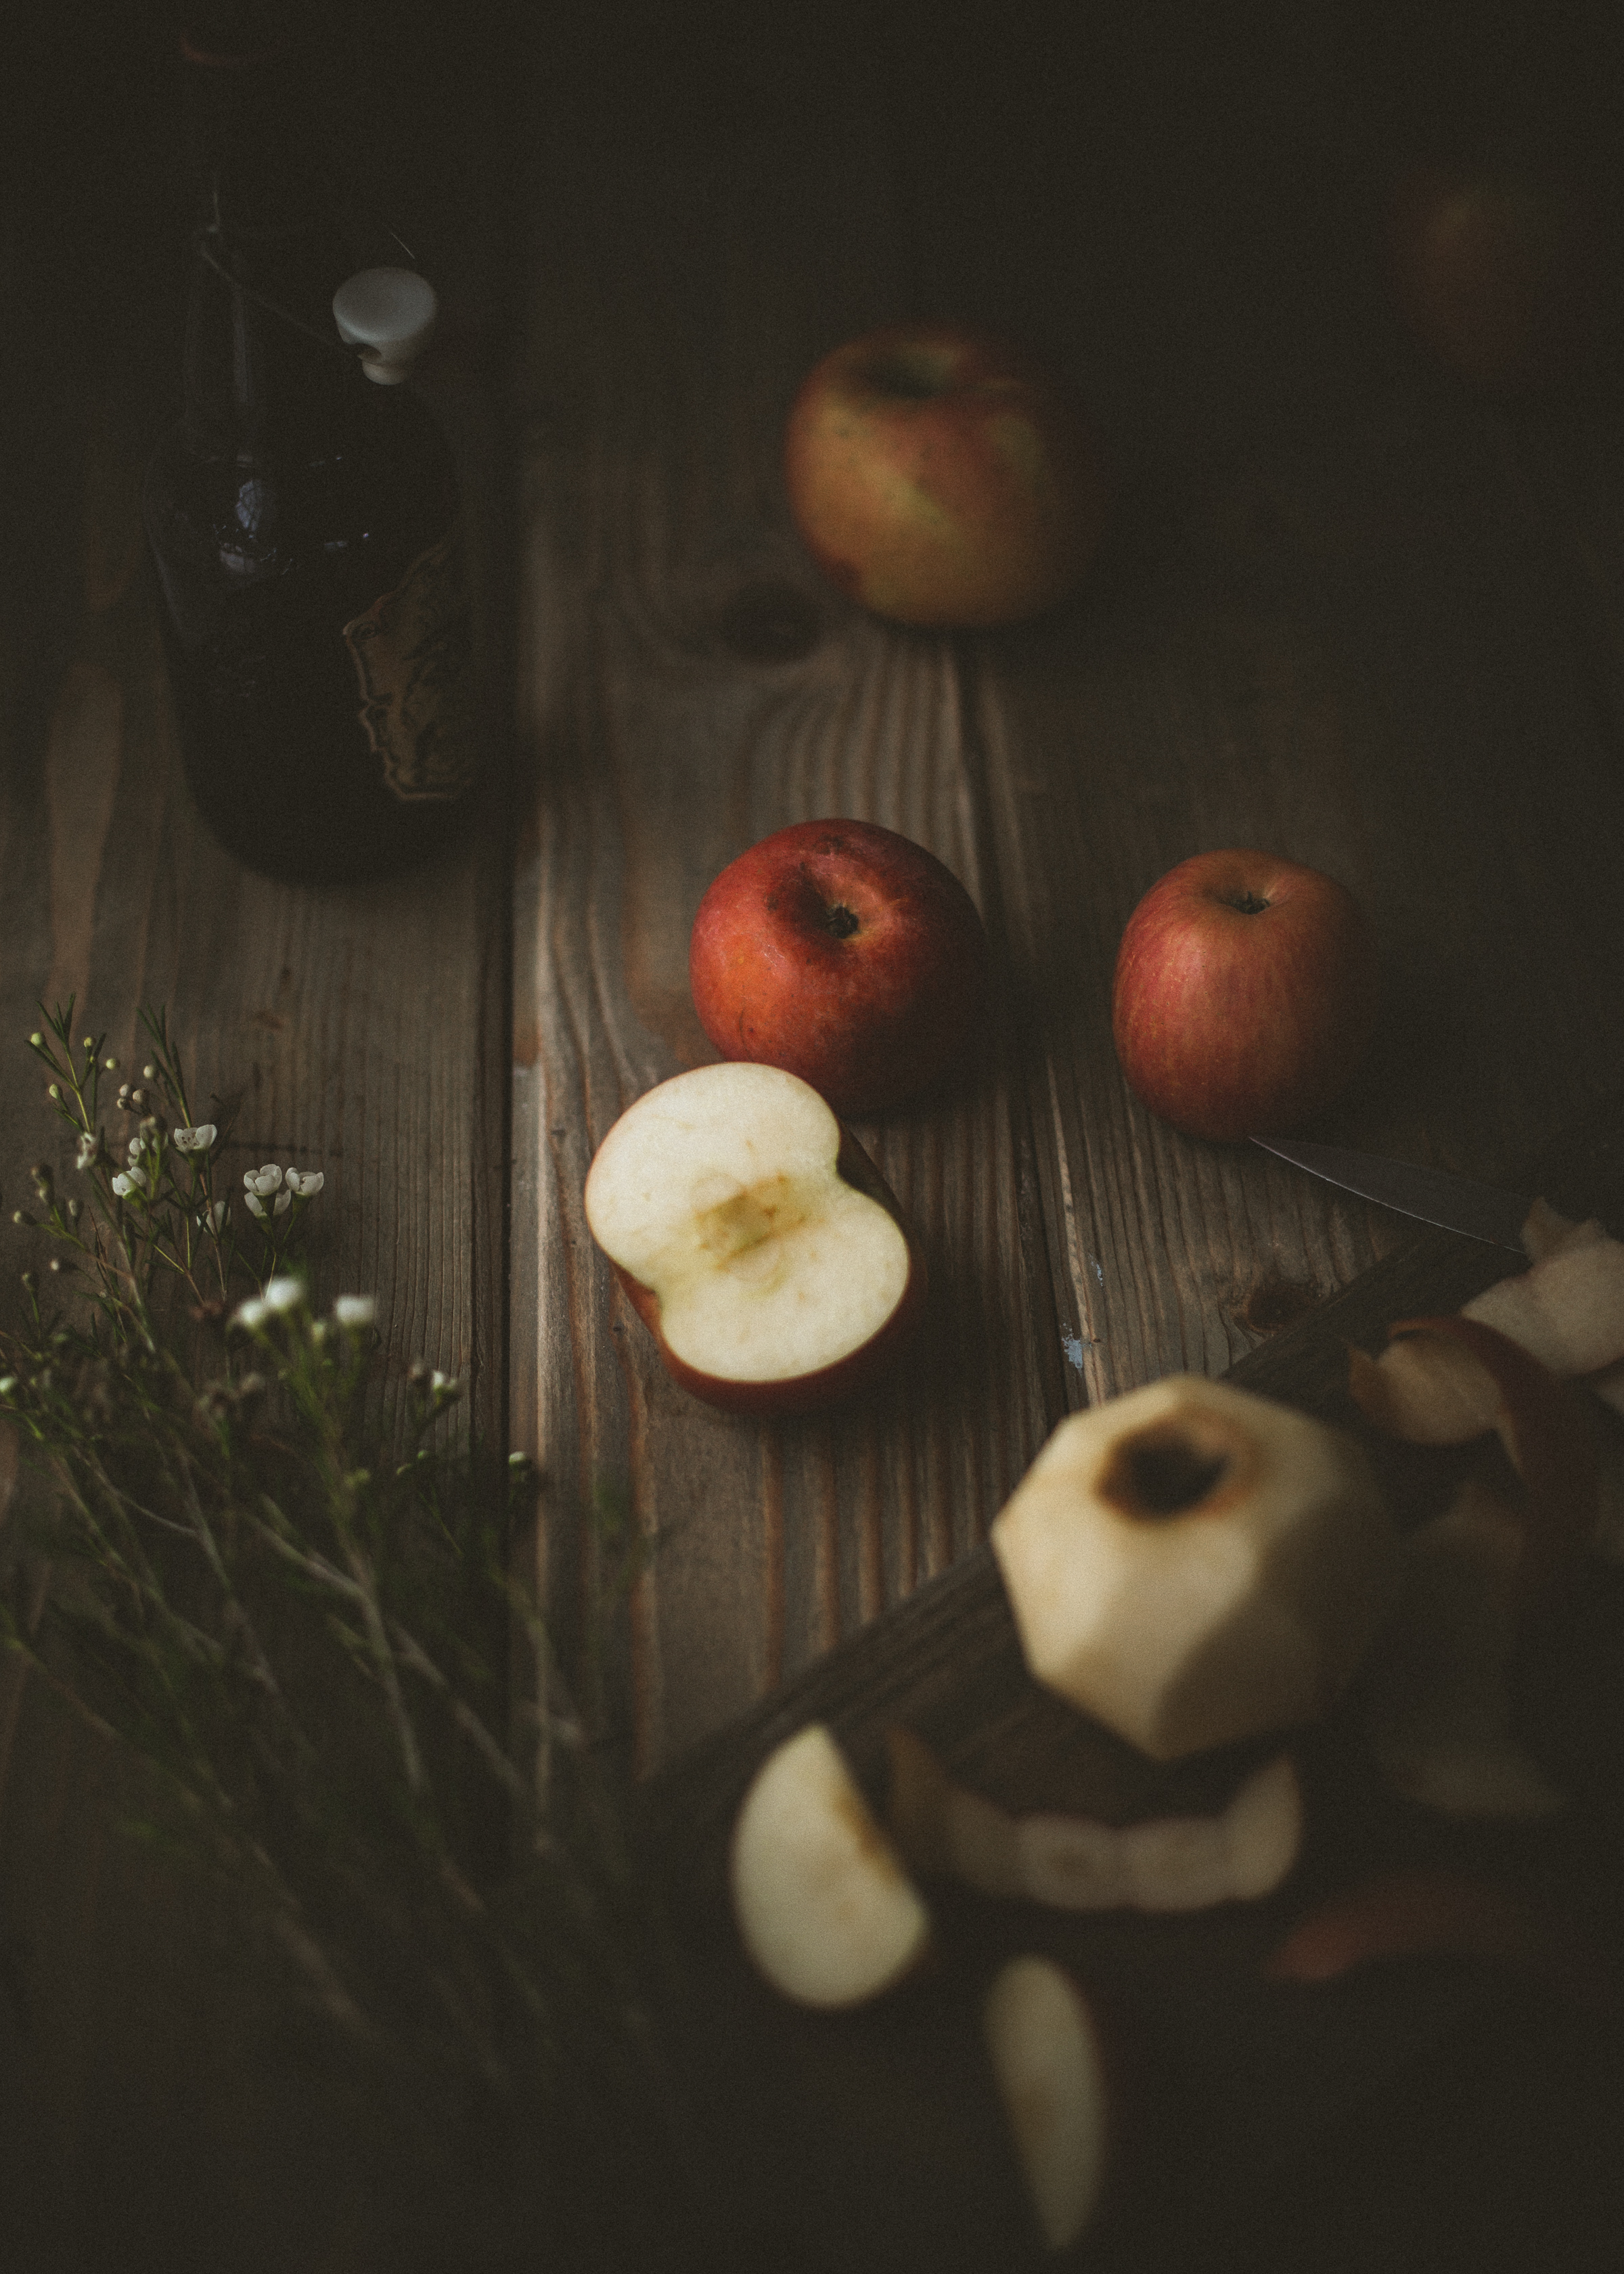 Apples still life photography | from scratch, mostly blog